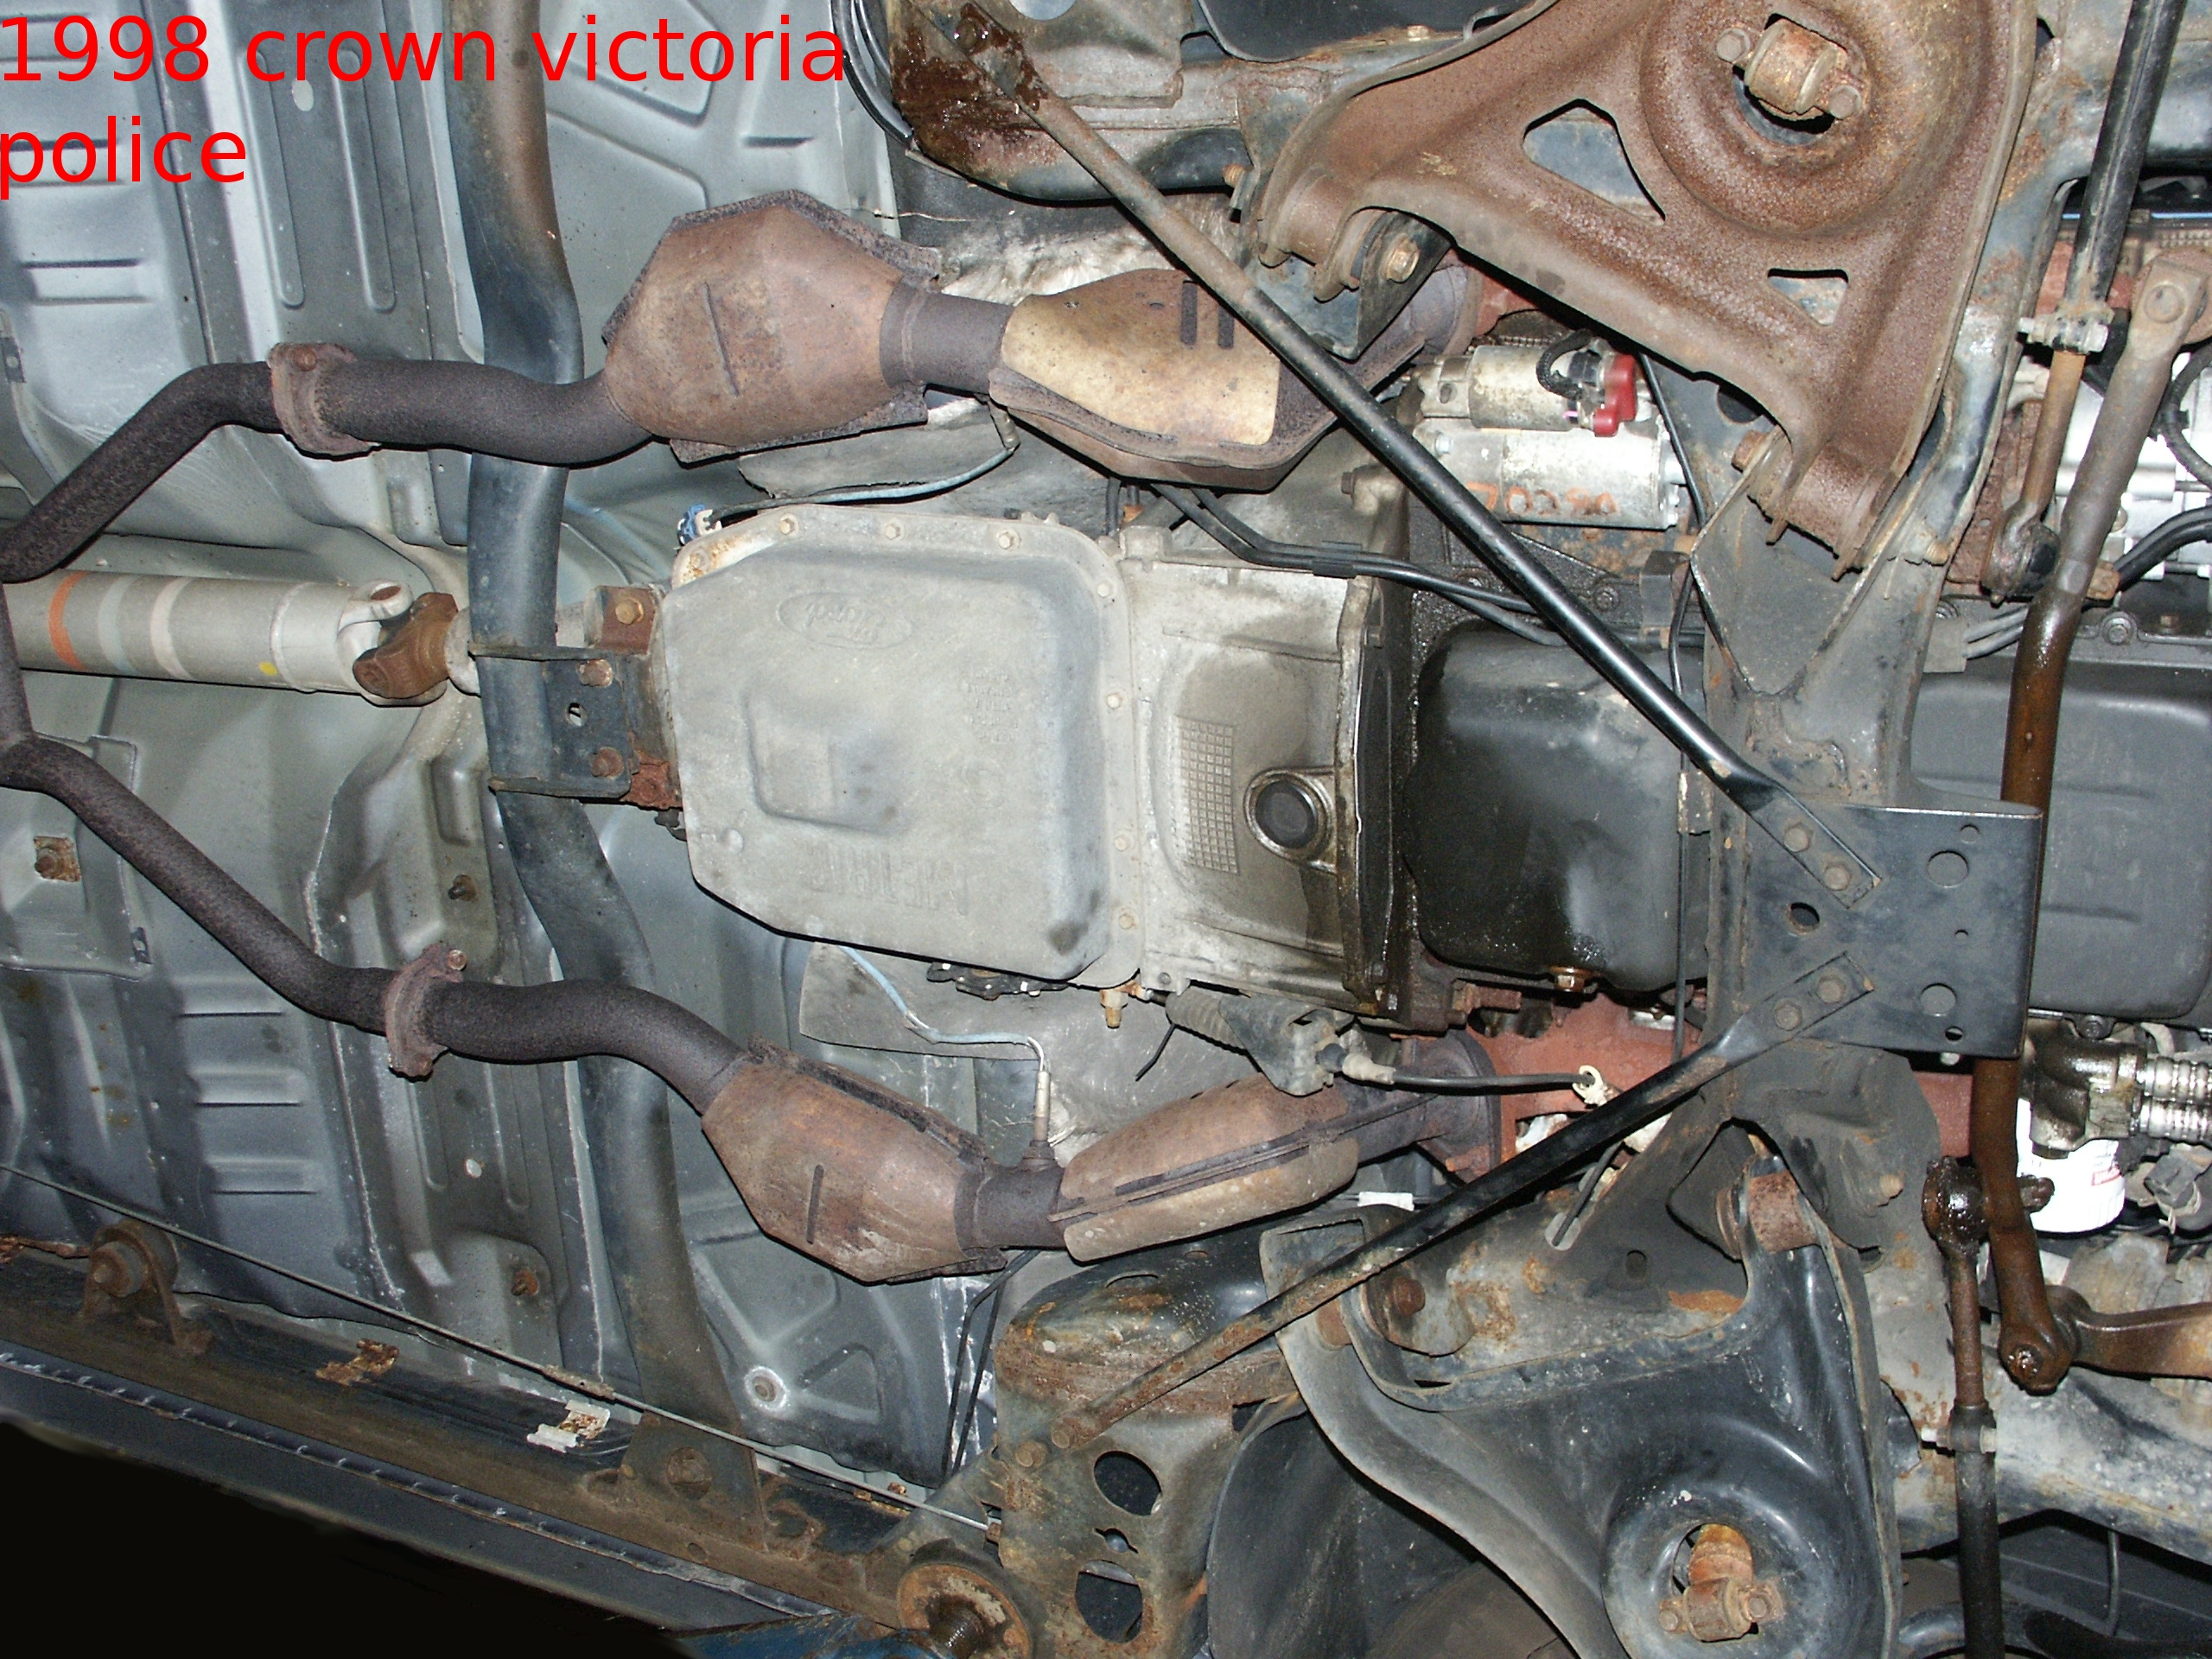 Car Leaks Red Fluid besides Wiring Diagram 2007 Dodge Grand Caravan also 94 Pontiac Grand Prix Fuel Filter further Oil pump  internal  bustion engine  See also likewise Honda Accord 1 6 1996 Specs And Images. on fuel filter 2002 lincoln town car